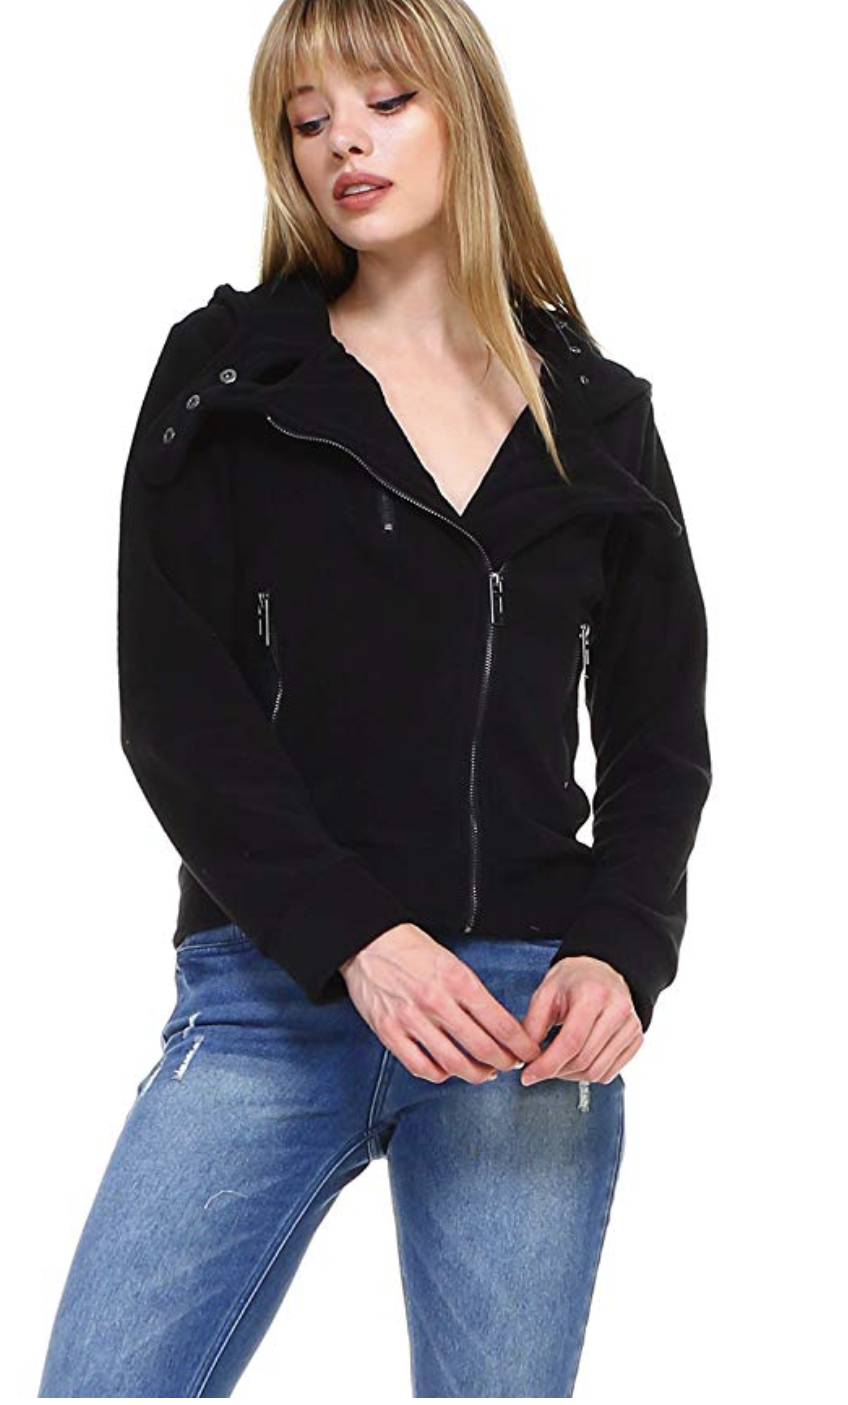 Women's slim fit fleece zipup asymmetrical fashion hoodie